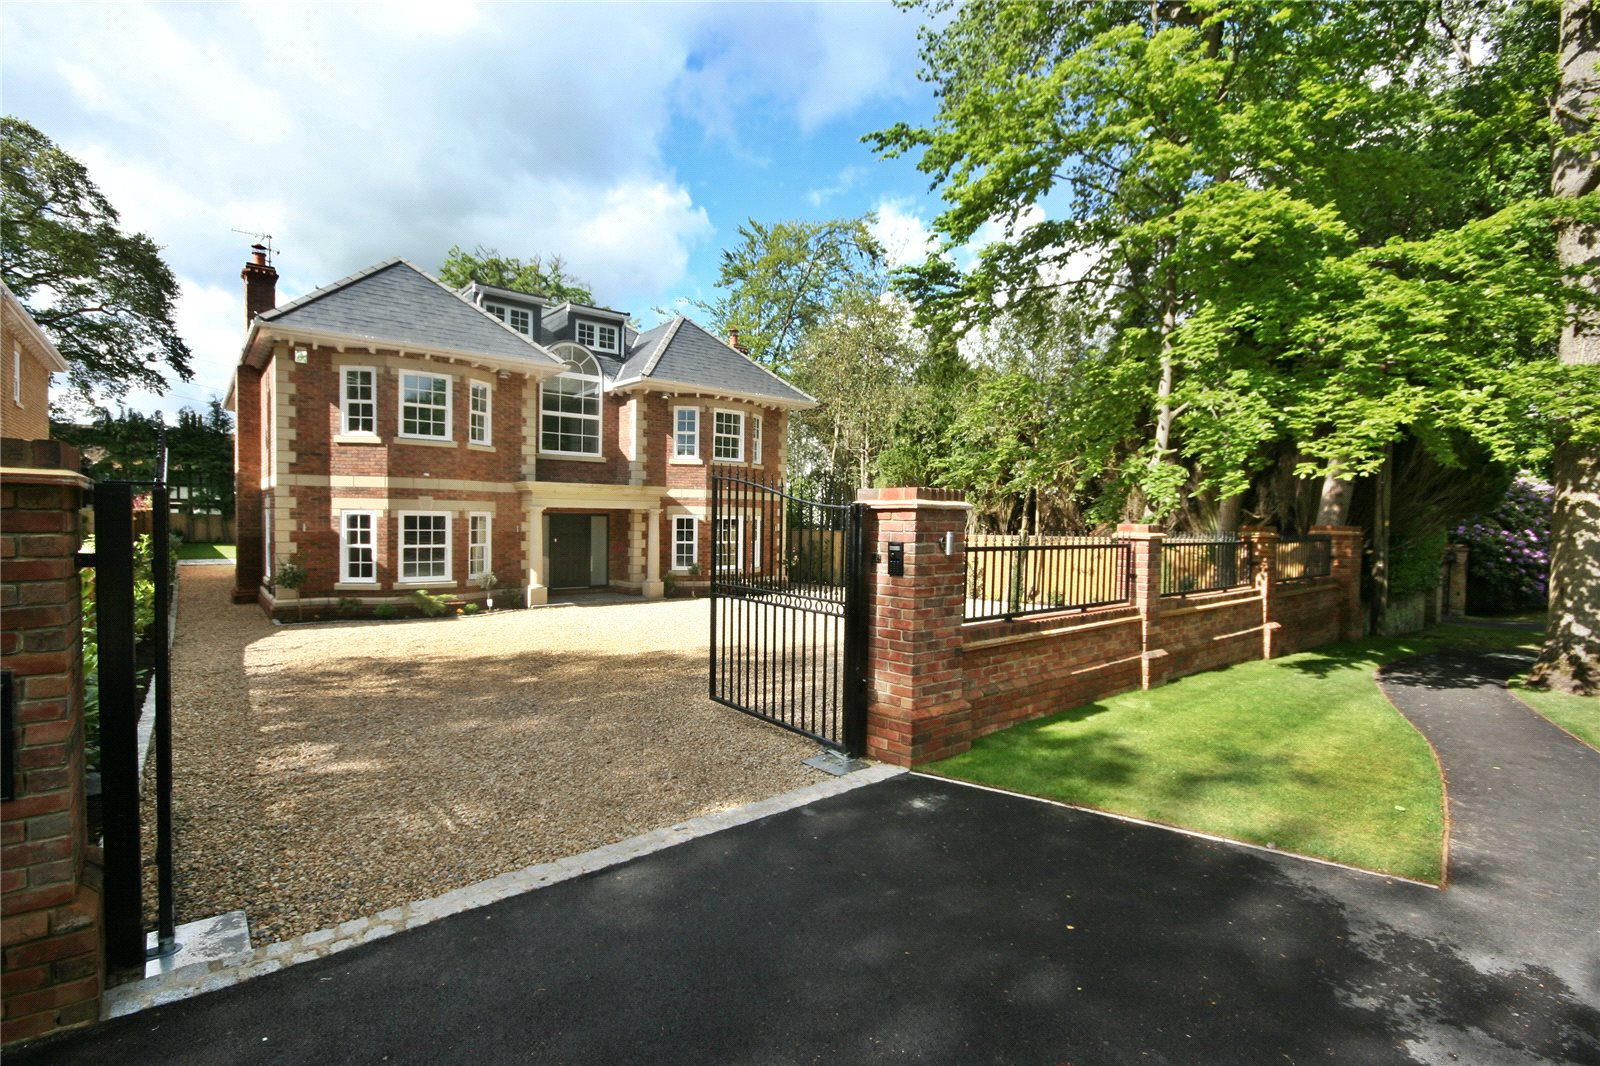 Single Family Home for Sale at Fulmer Drive, Gerrards Cross, Buckinghamshire, SL9 Gerrards Cross, England